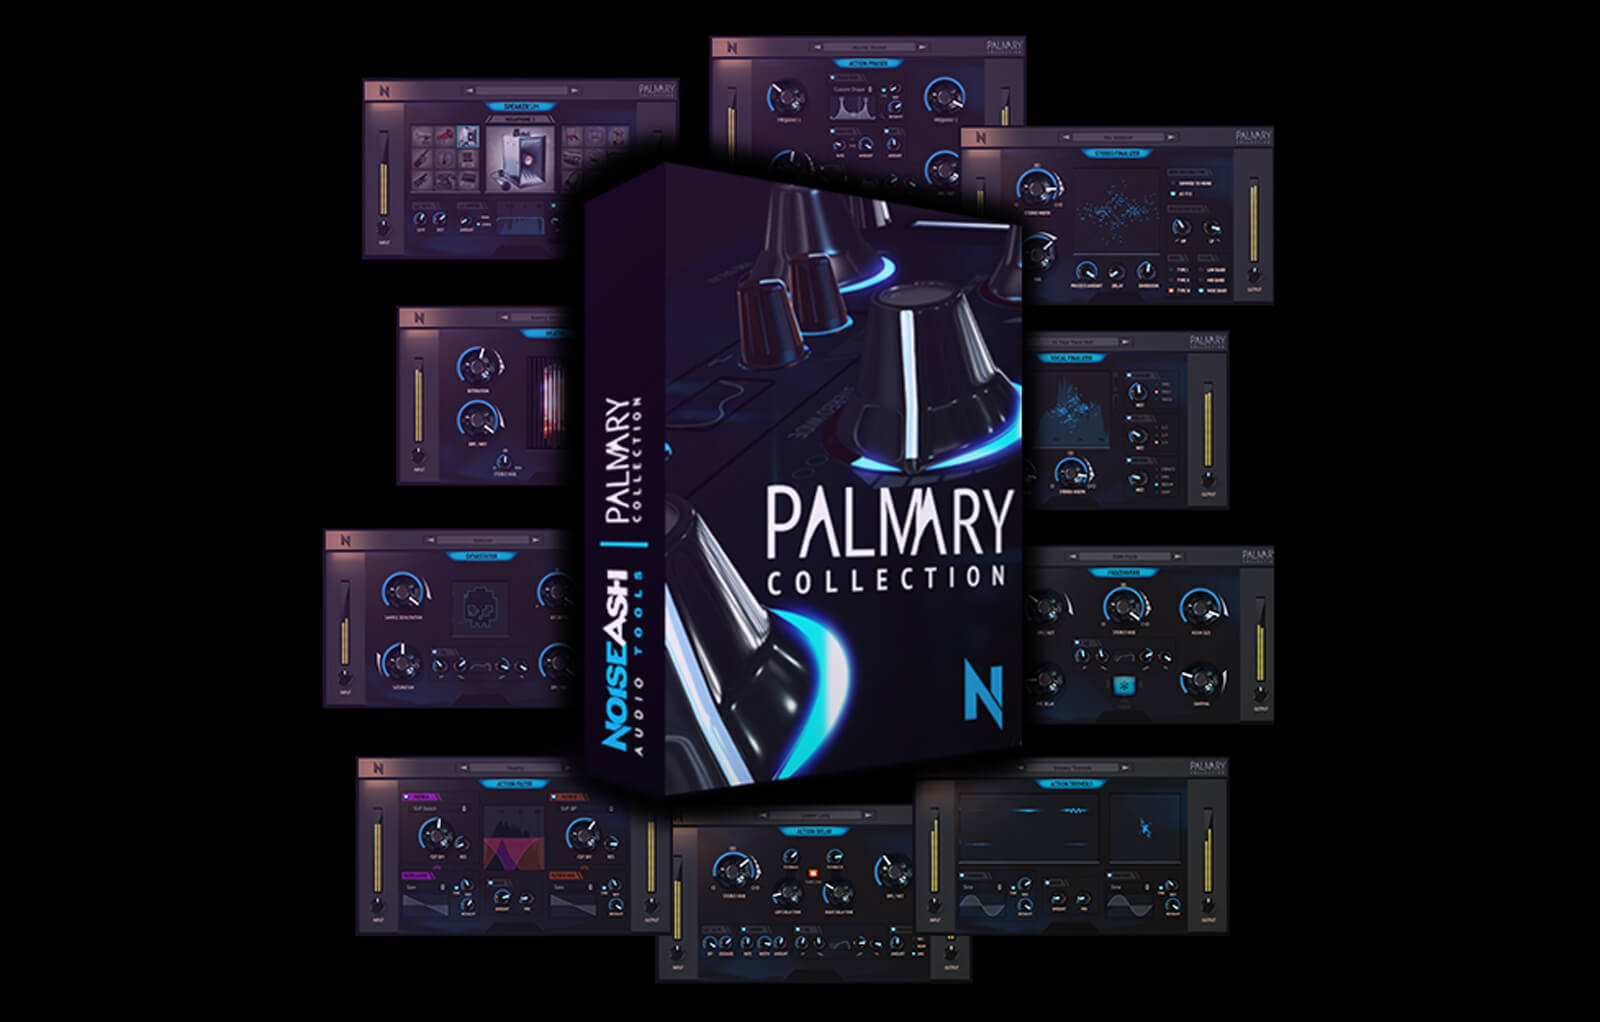 Palmary Collection